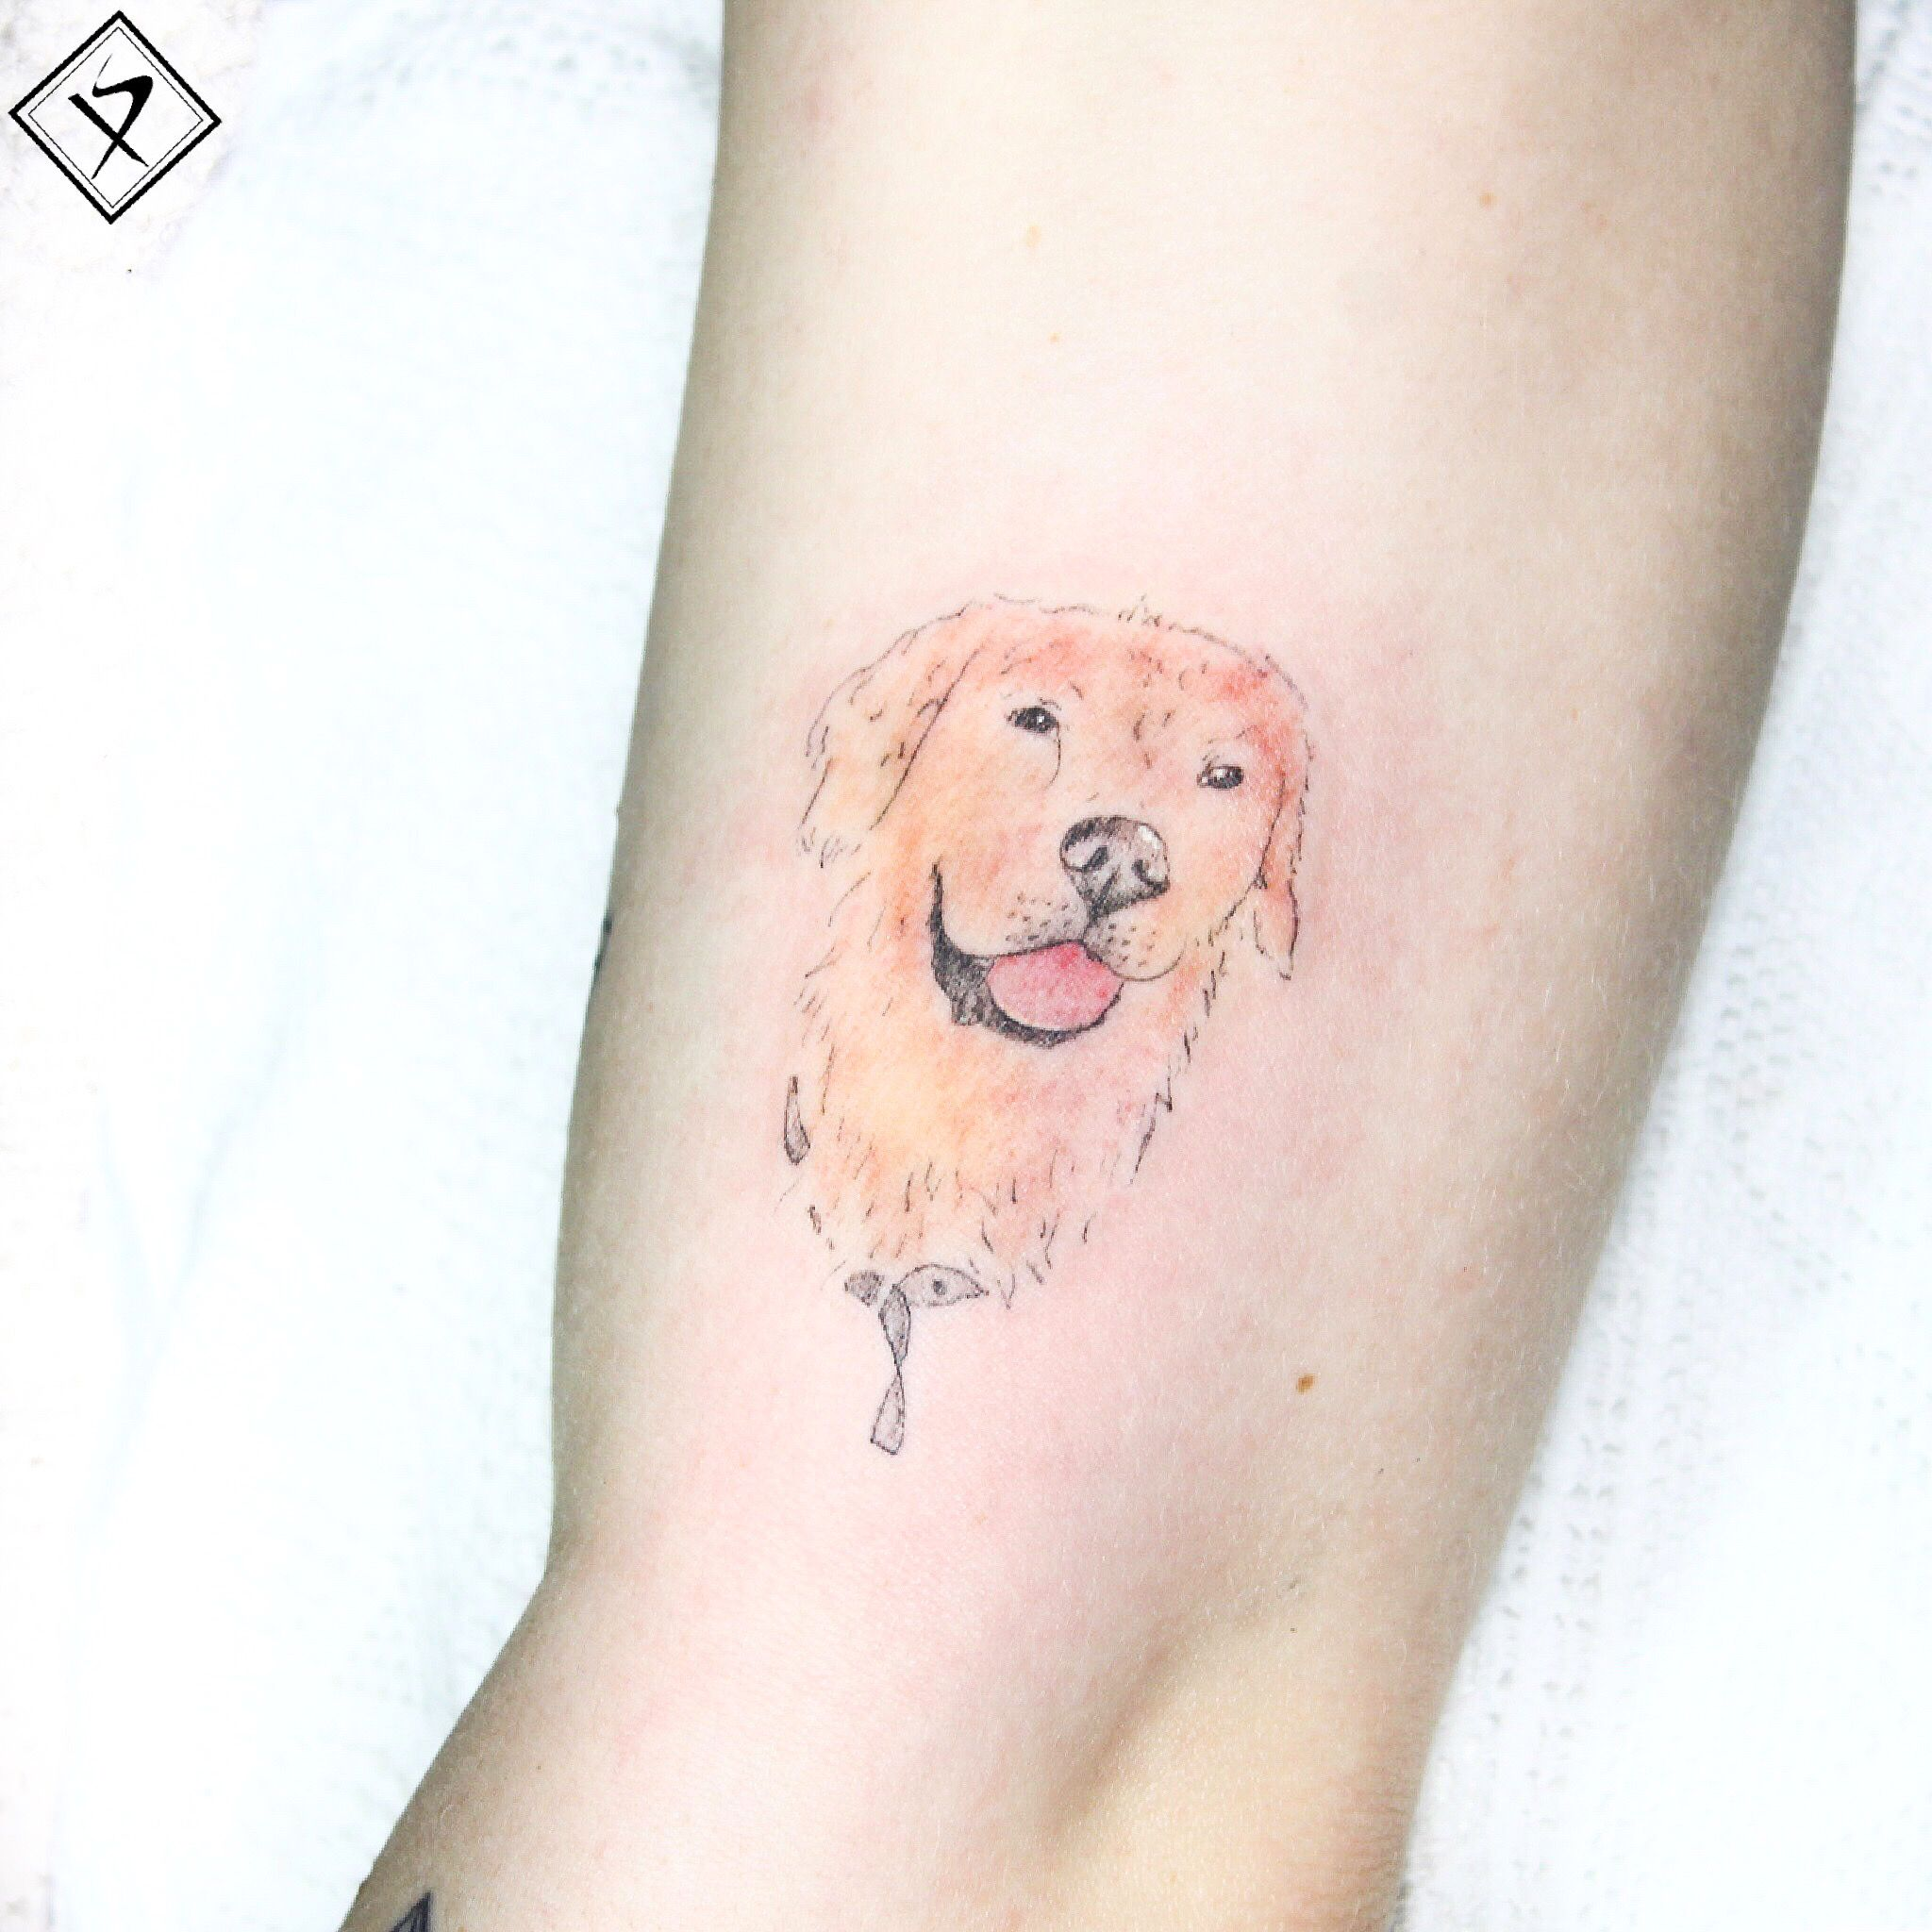 #tattooartist #xbariskaya #smalltattoo #linetattoo #tiny #tattooidea #animaltattoo #dogtattoo #goldenretrievertattoo #look